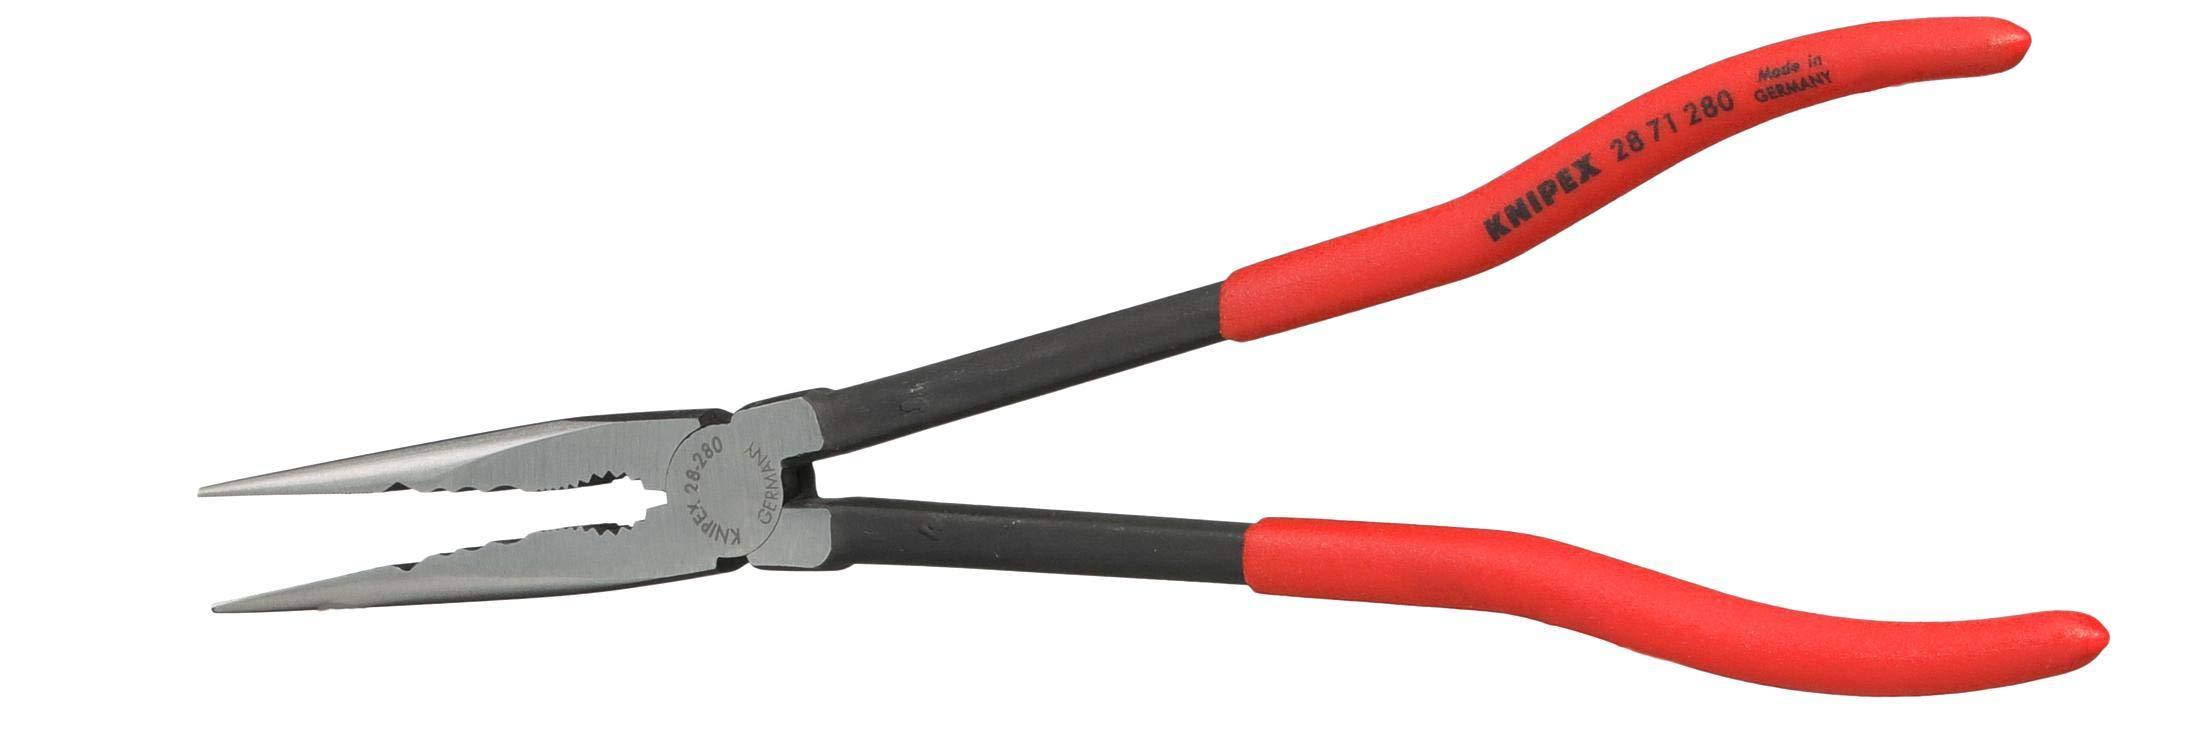 Knipex Tools 28 71 280 11'' Extra Long Needle Nose Pliers - Straight, by KNIPEX Tools